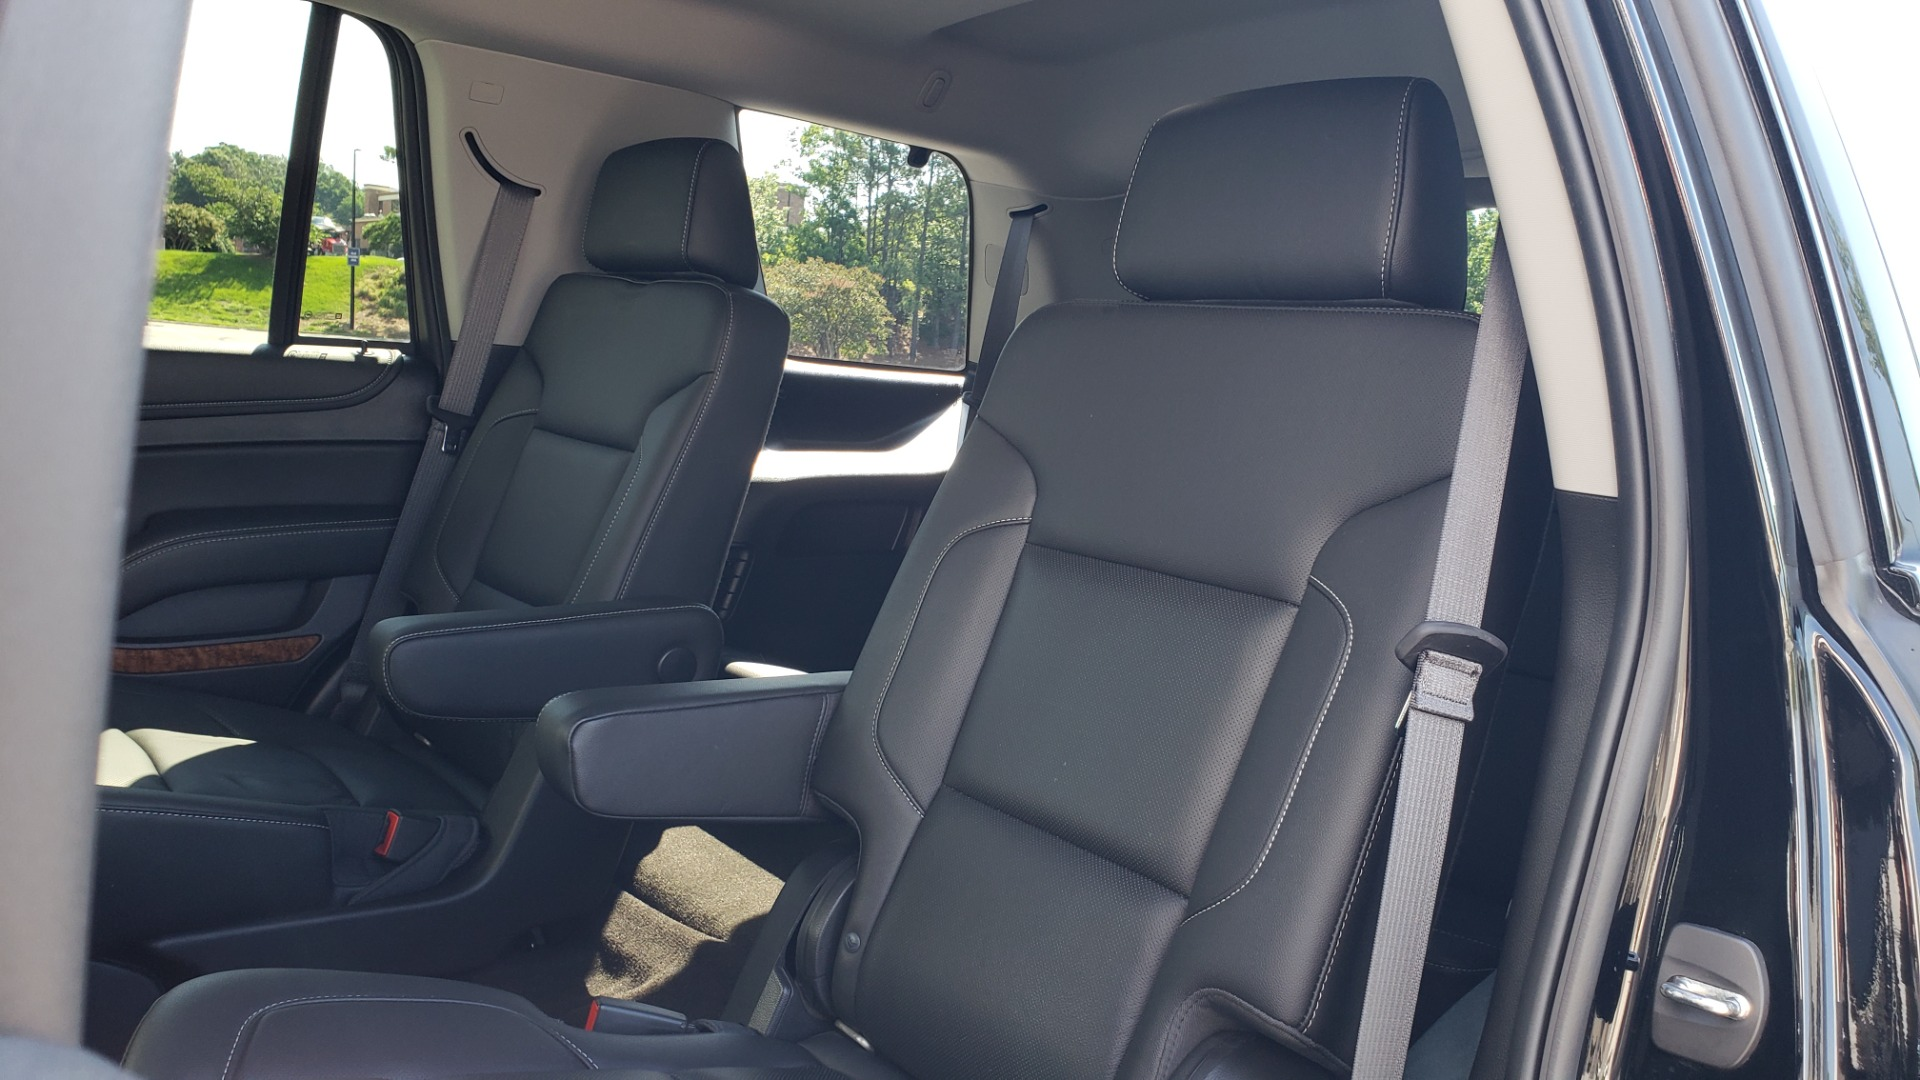 Used 2018 Chevrolet TAHOE PREMIER RST / 4X4 / NAV / BOSE / SUNROOF / 3-ROW / REARVIEW for sale $65,995 at Formula Imports in Charlotte NC 28227 69